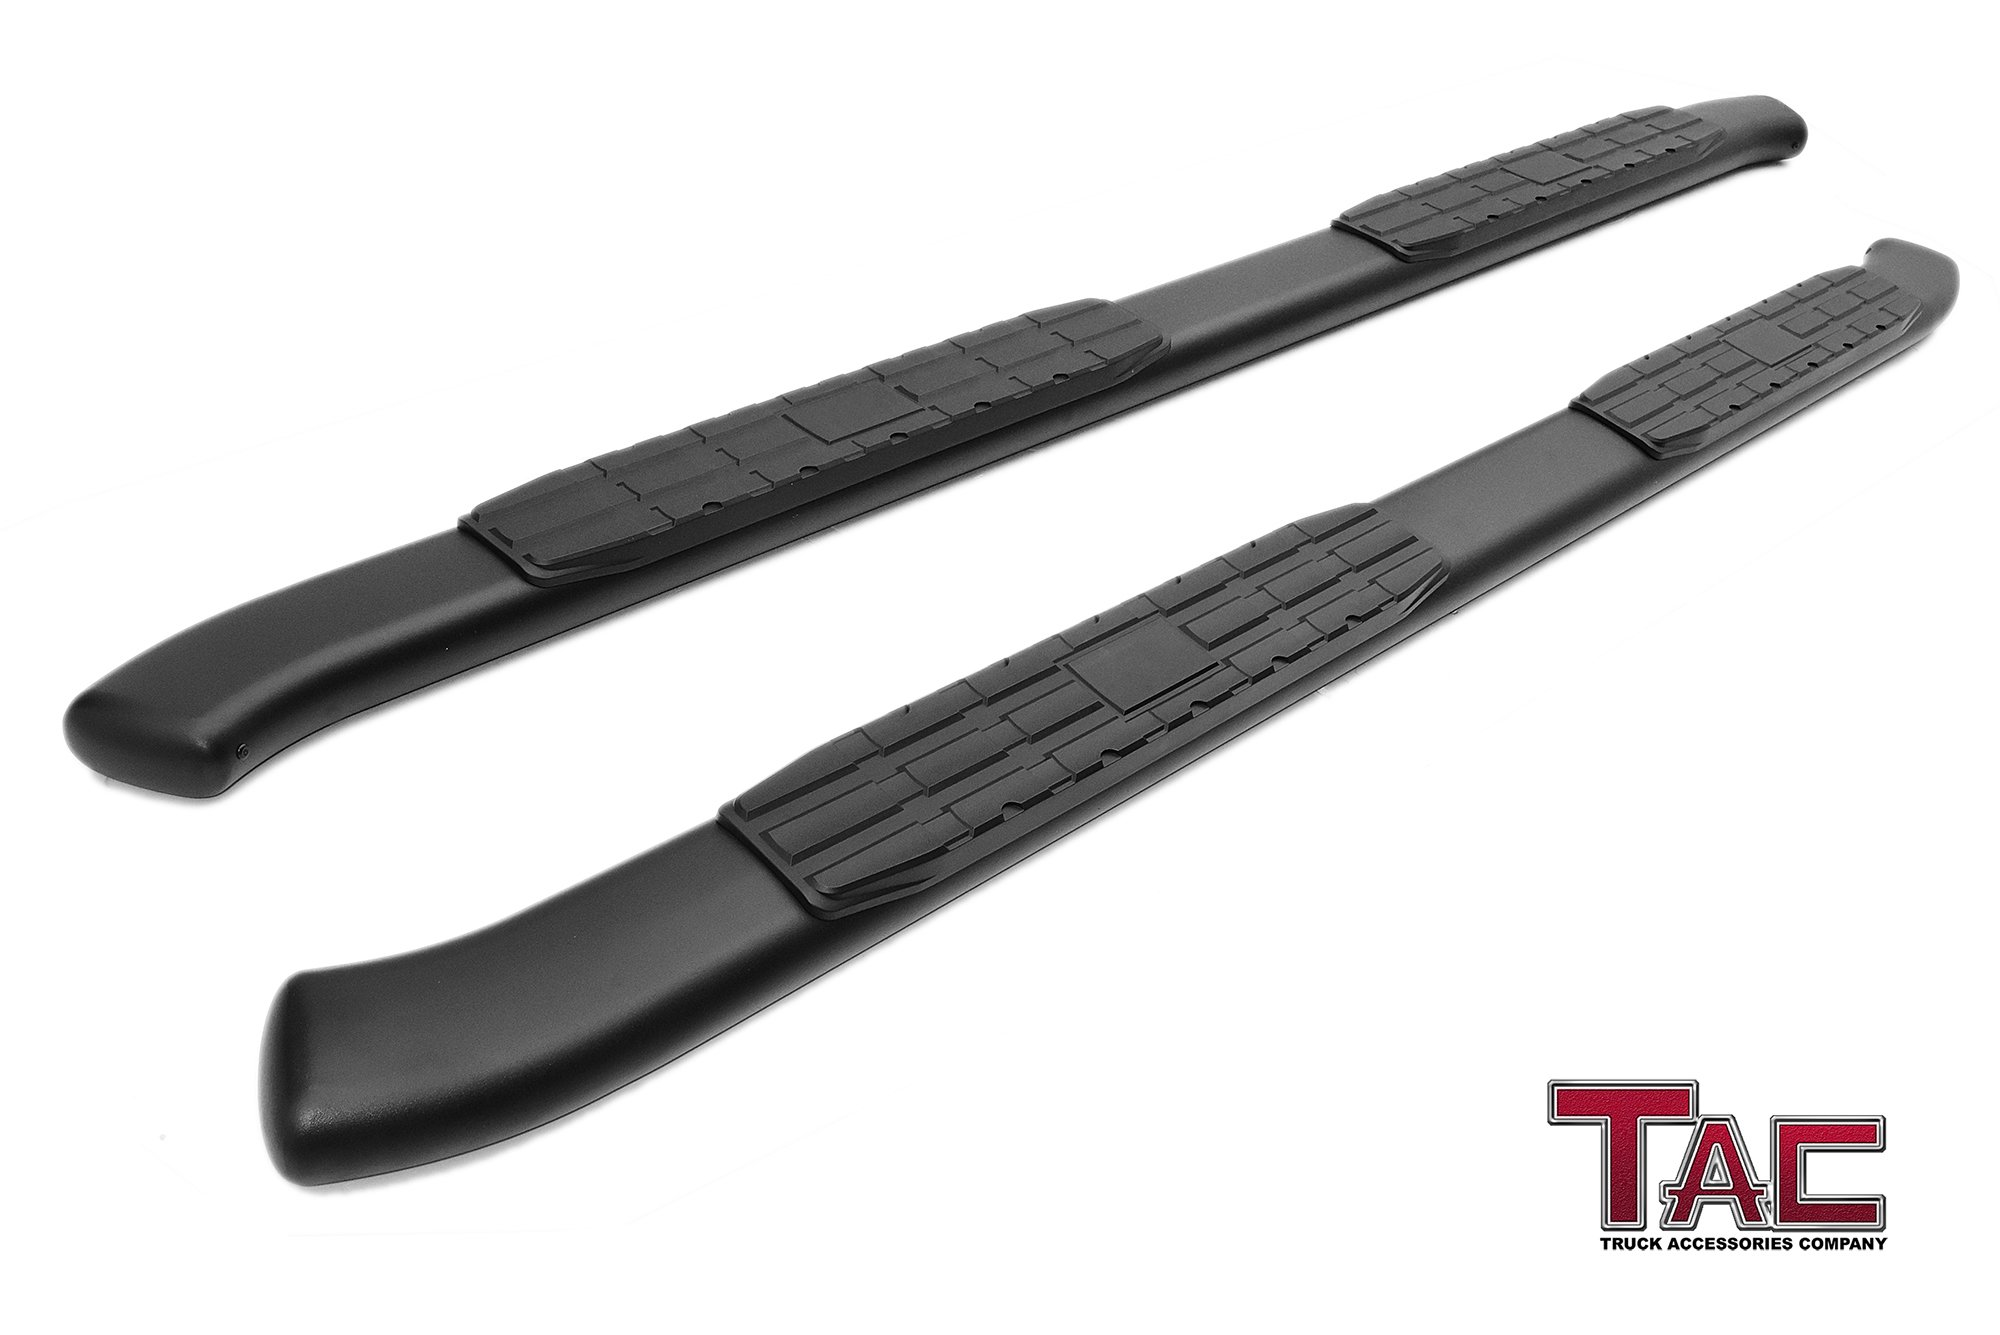 TAC 4.25'' PNC Oval Bend Side Steps Fit 2005-2019 Toyota Tacoma Double Cab Pickup Truck Black Side Bars Nerf Bars Running Boards Rock Panel Off Road Exterior Accessories (2 Pieces Running Boards)